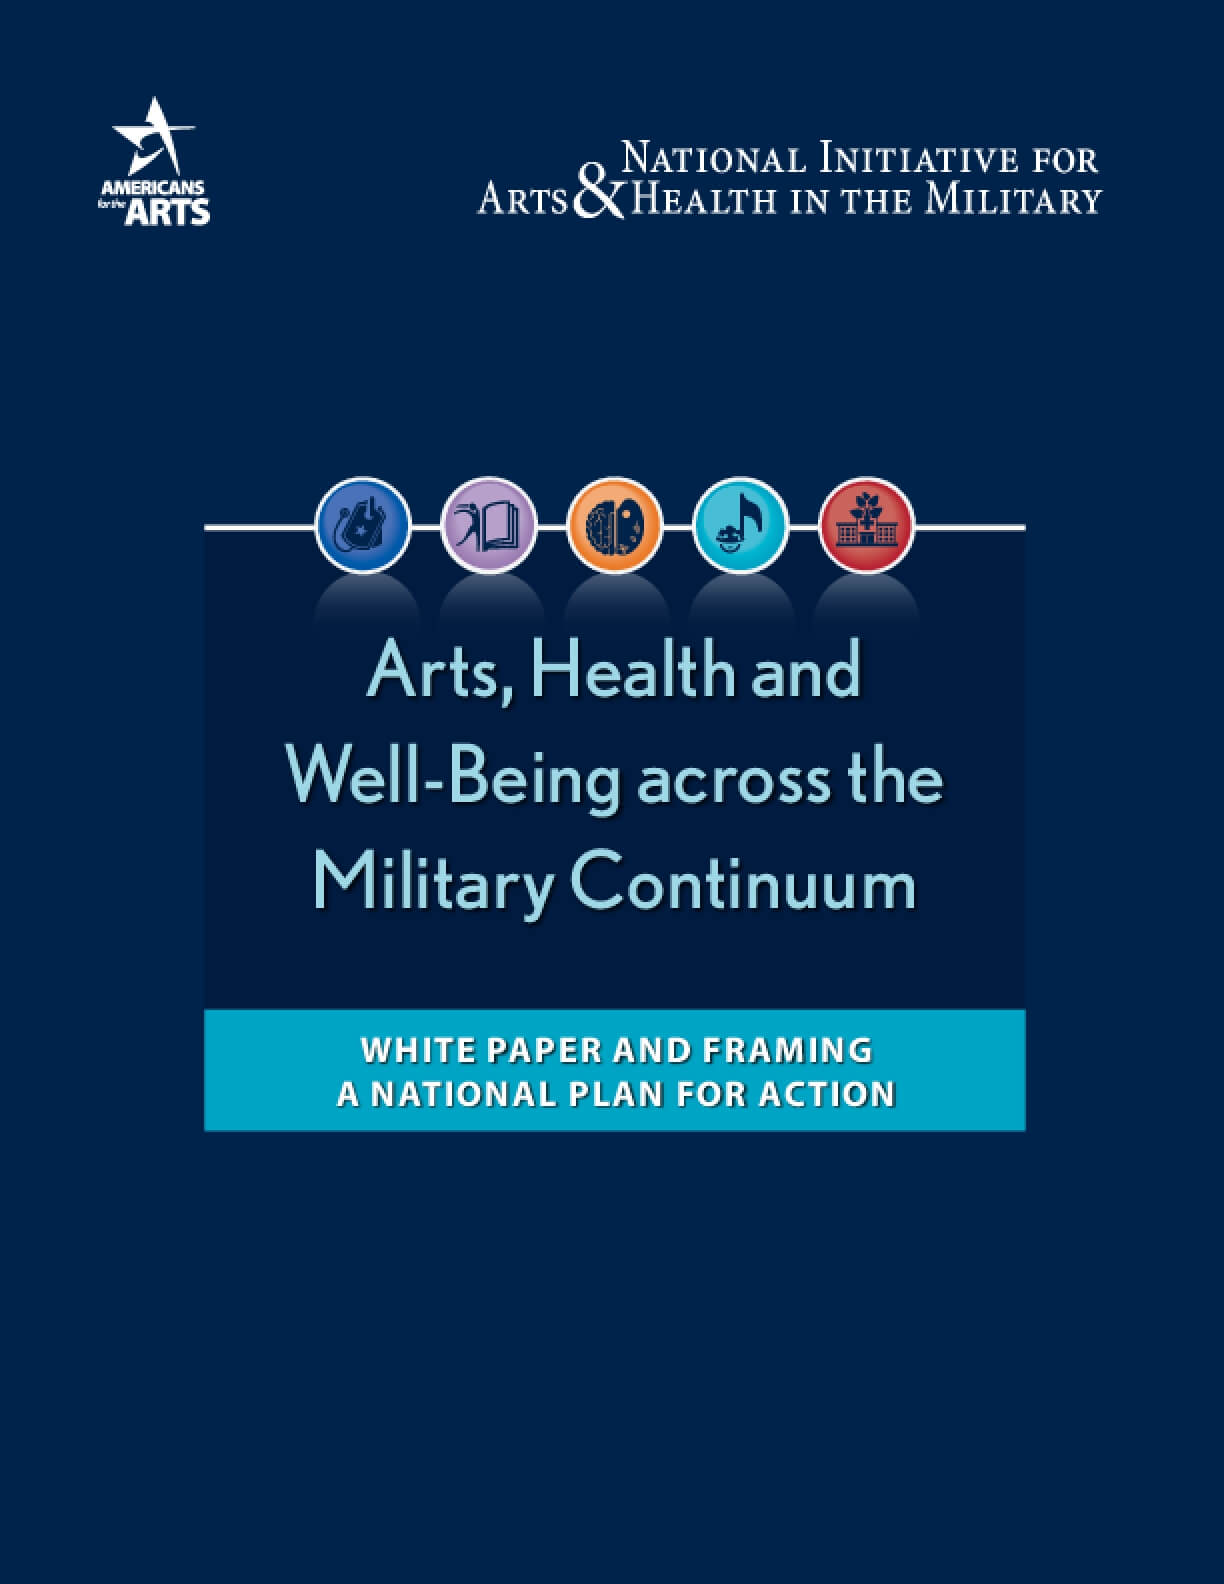 Arts, Health, and Well-Being Across the Military Continuum - White Paper and Framing a National Plan for Action